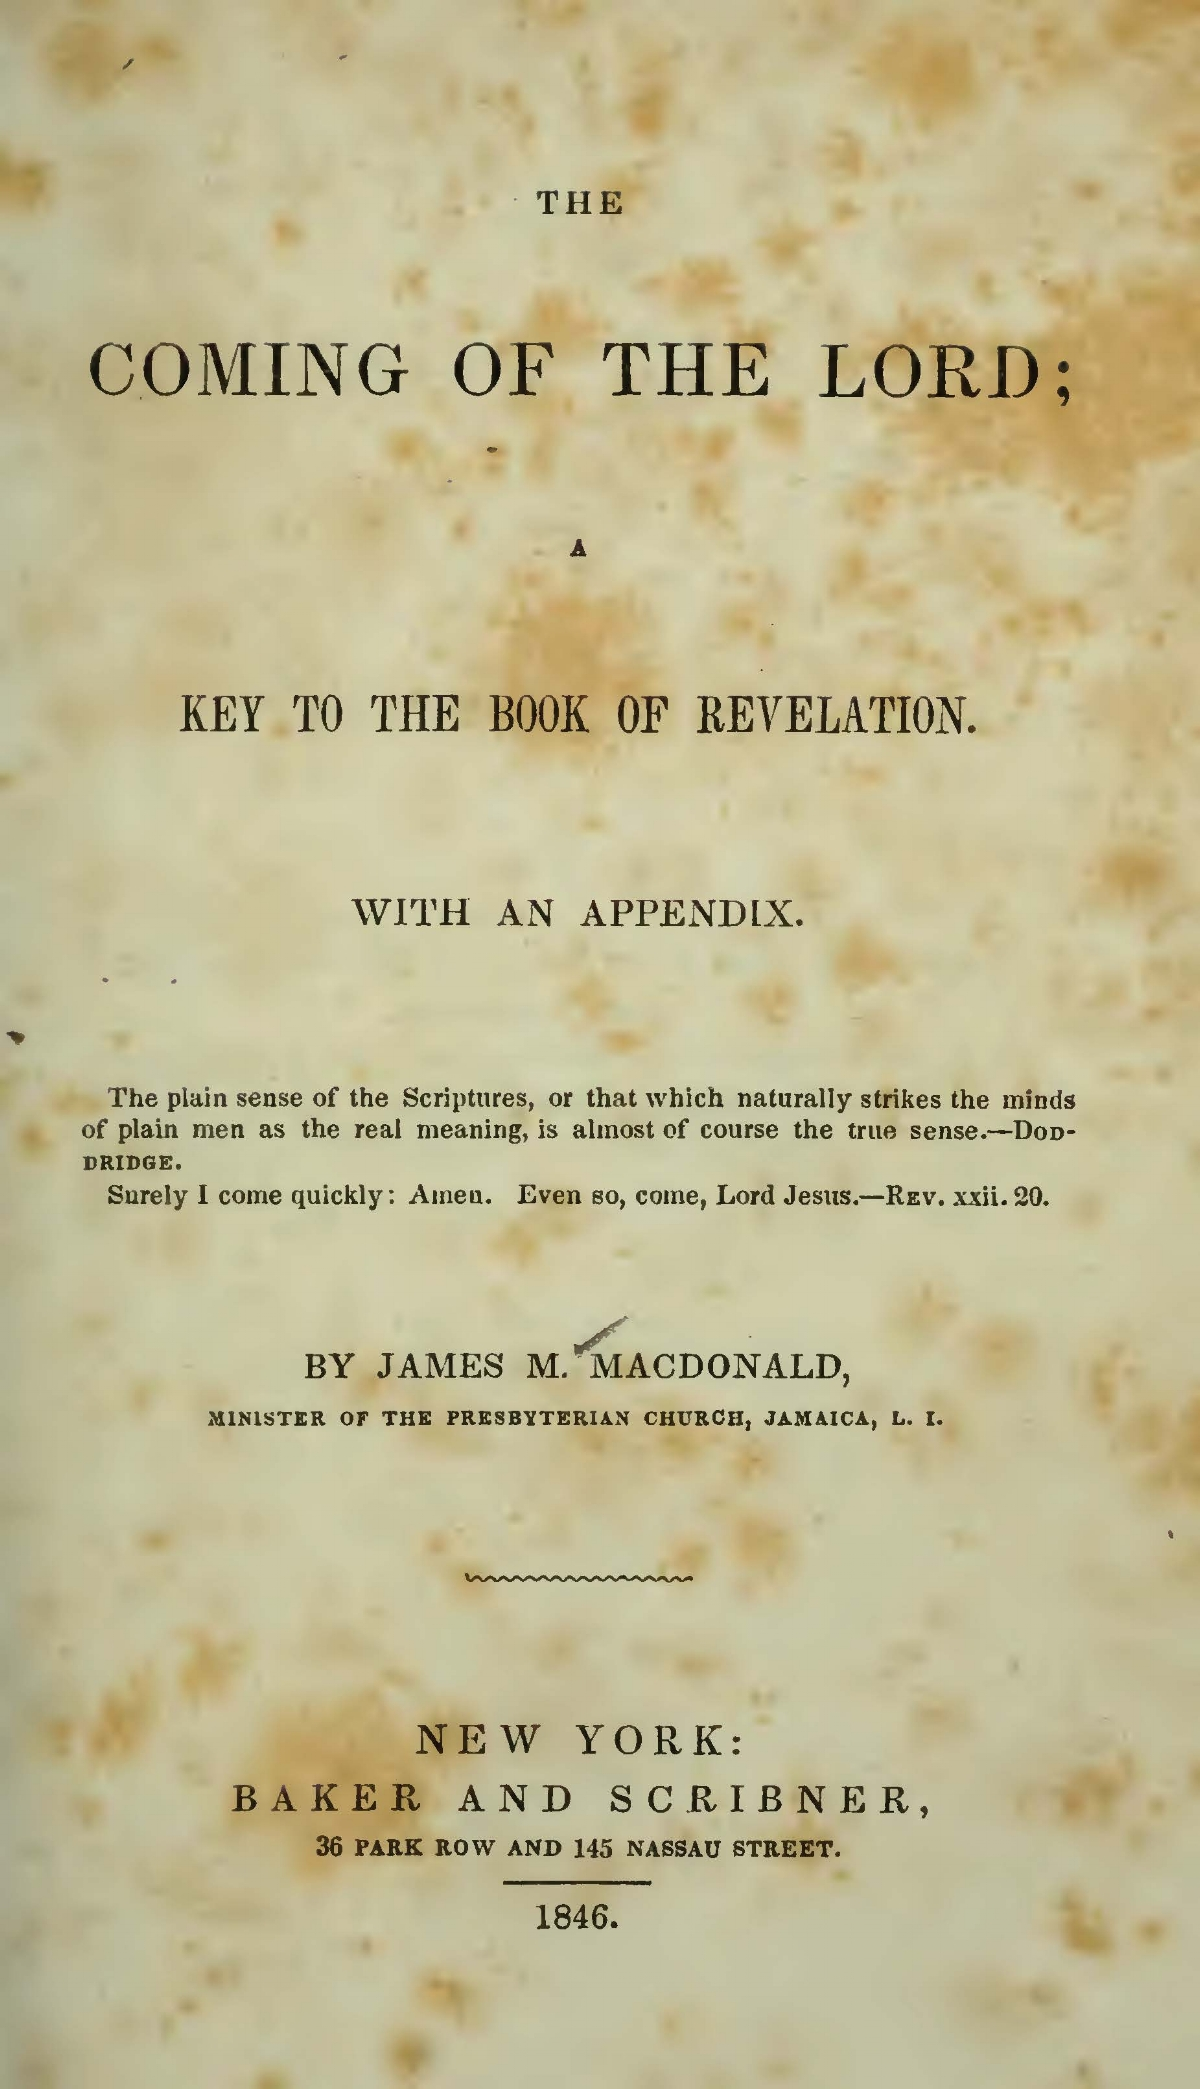 MacDonald, James Madison, The Coming of the Lord Title Page.jpg